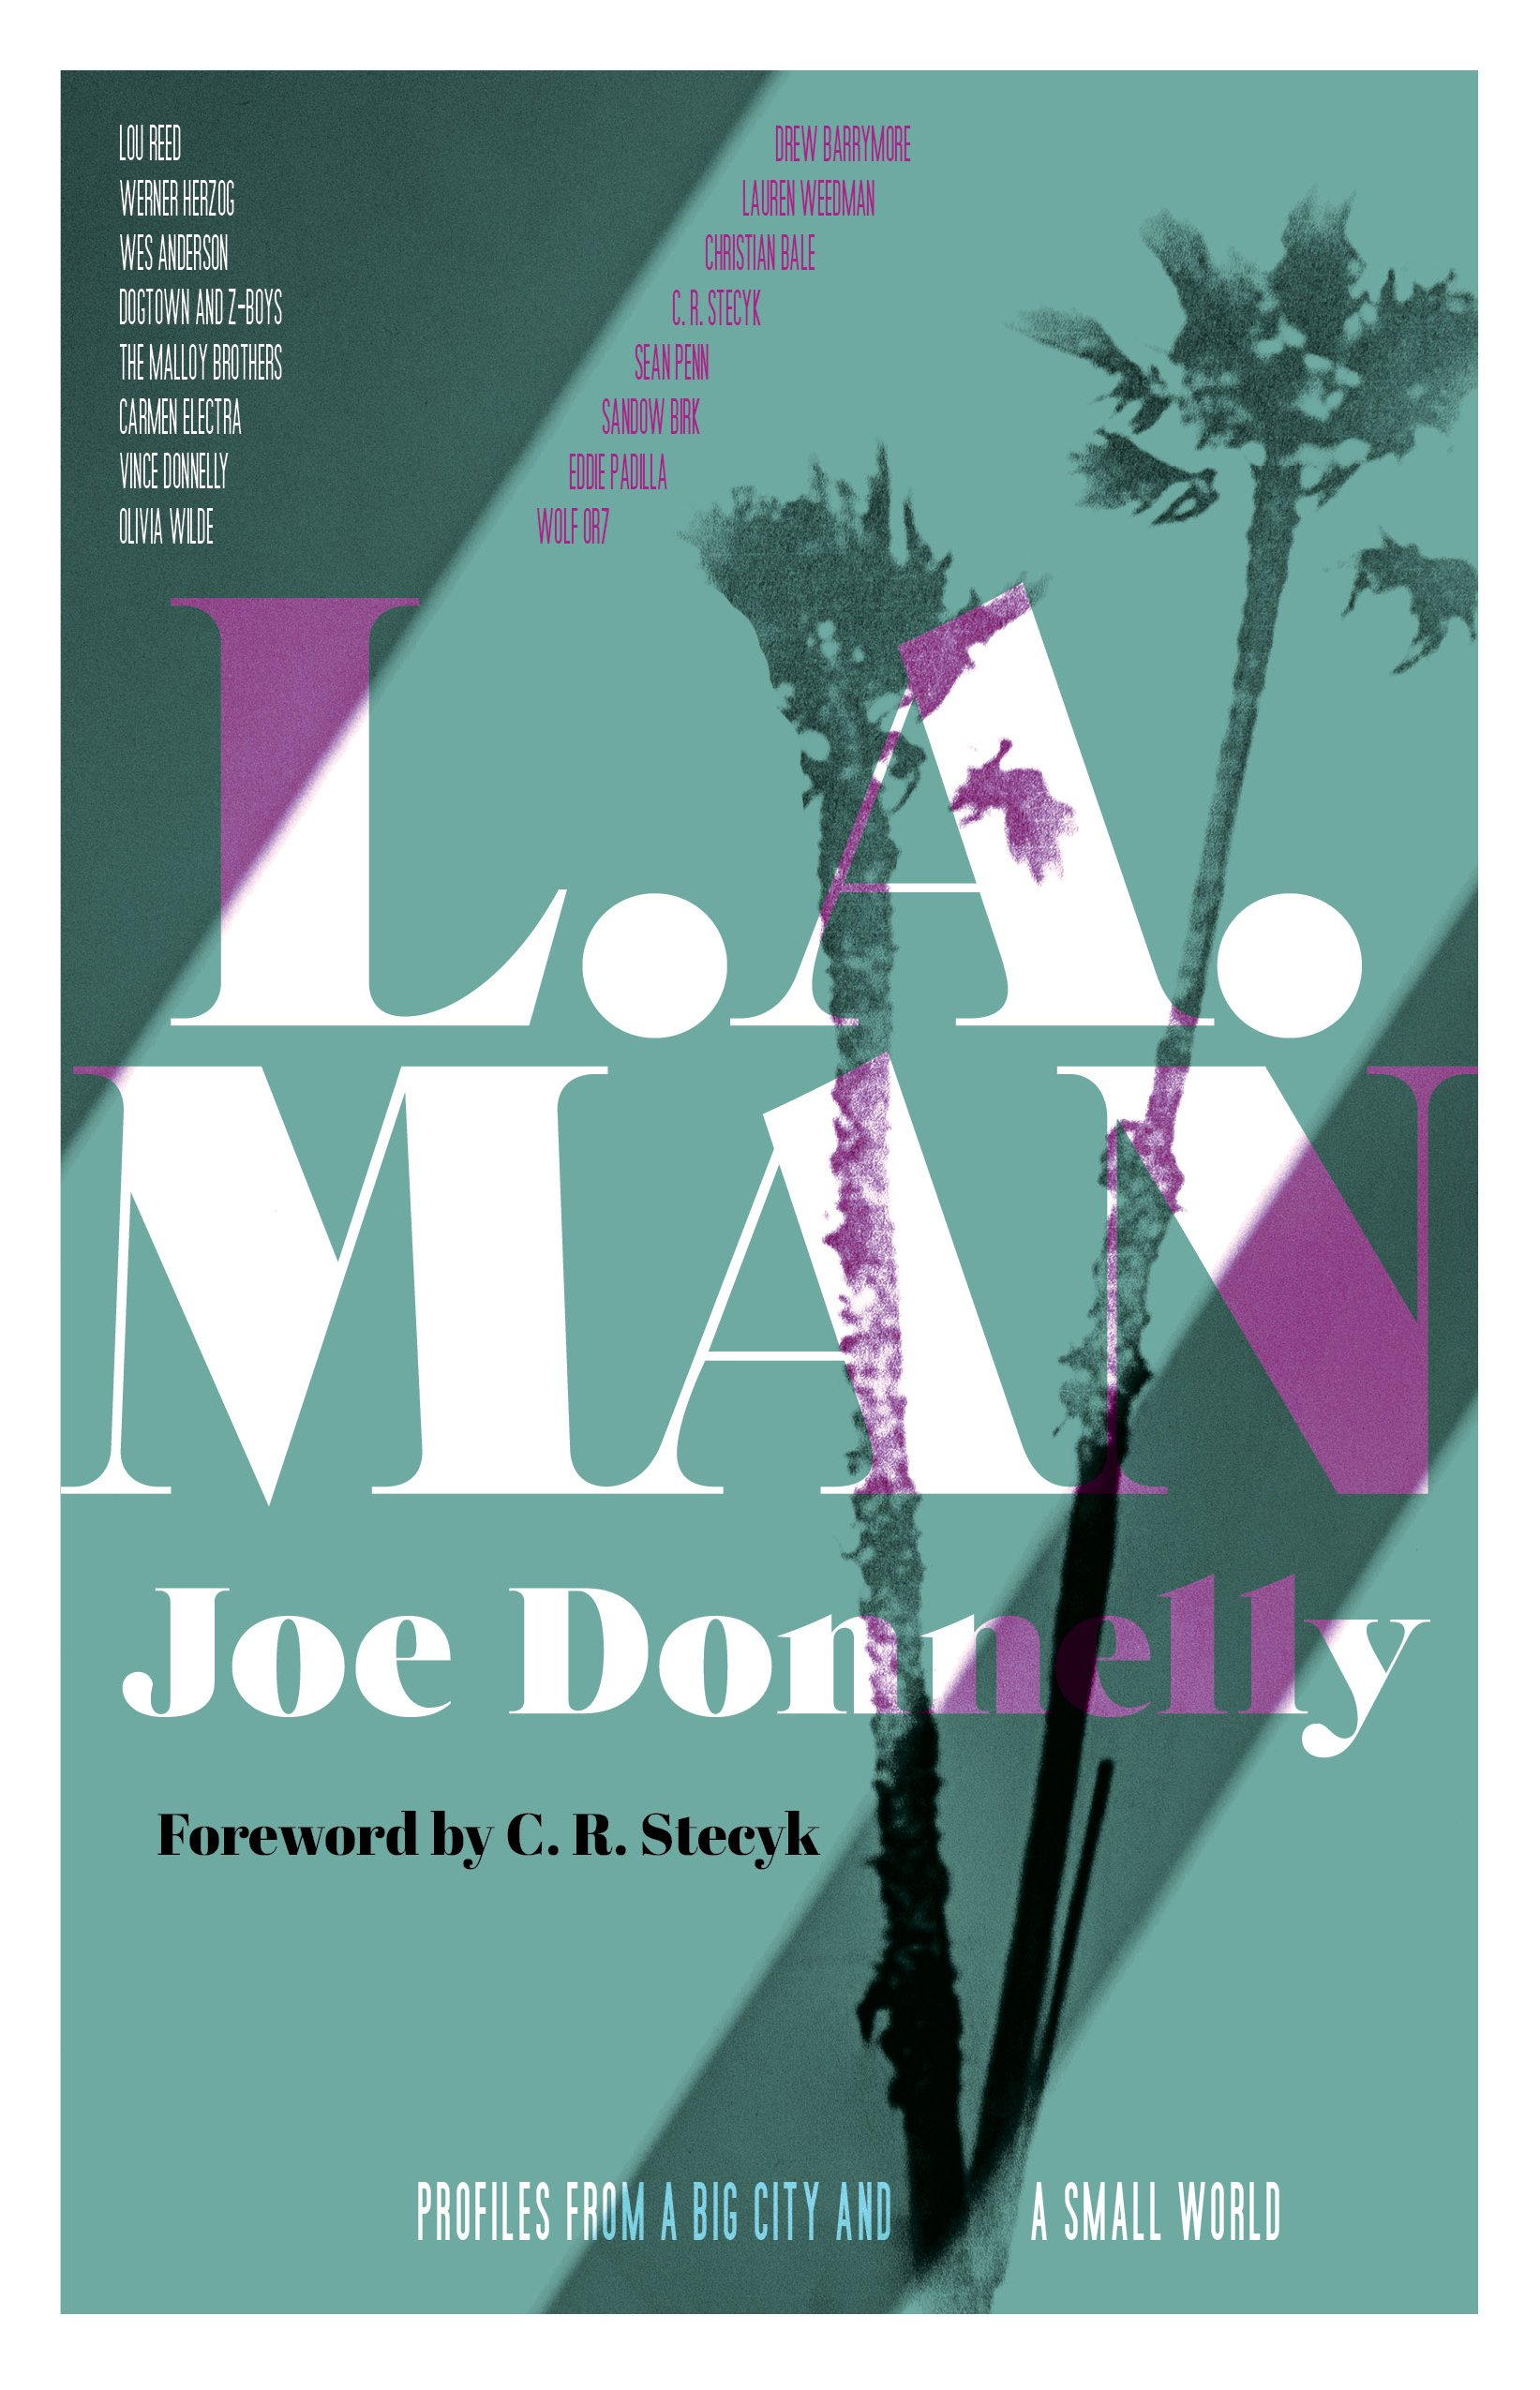 L.A. Man  Profiles from a Big City and a Small World Paperback – April 17 20b1b71422bca